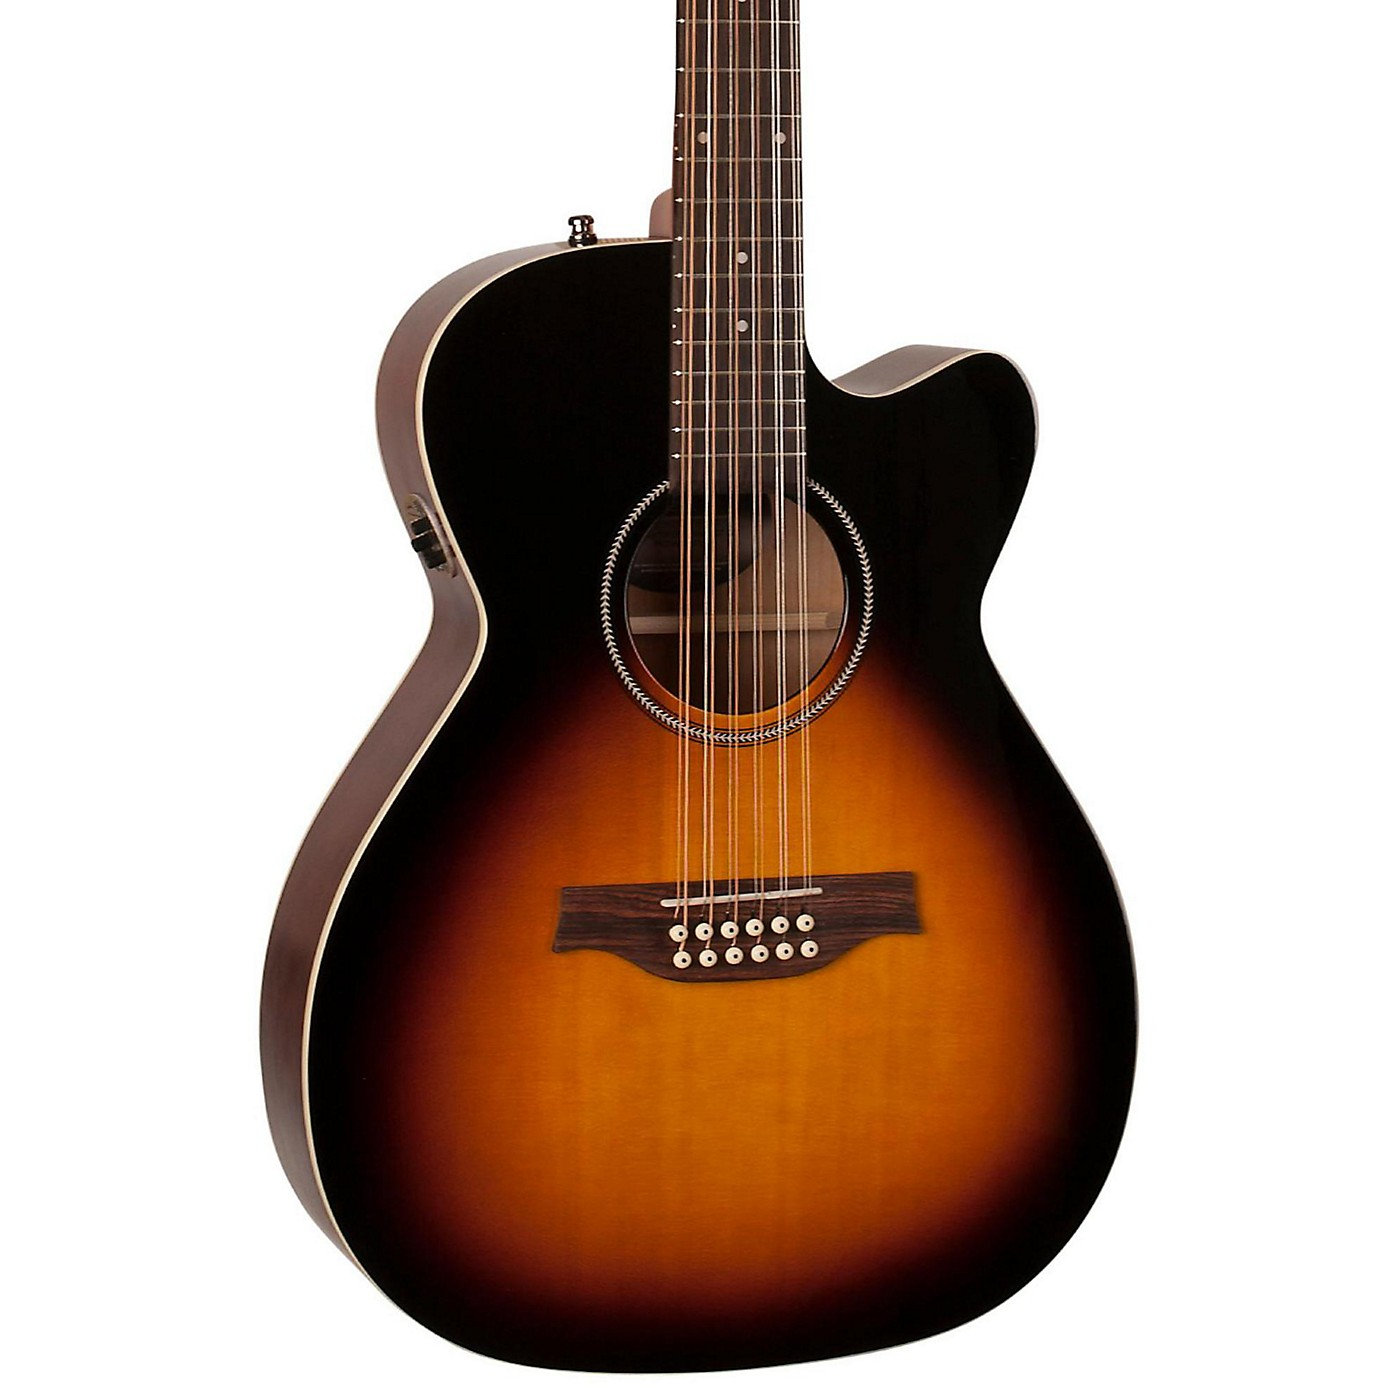 Seagull S12 Spruce Sunburst Cutaway Concert Hall QIT Acoustic-Electric Guitar thumbnail